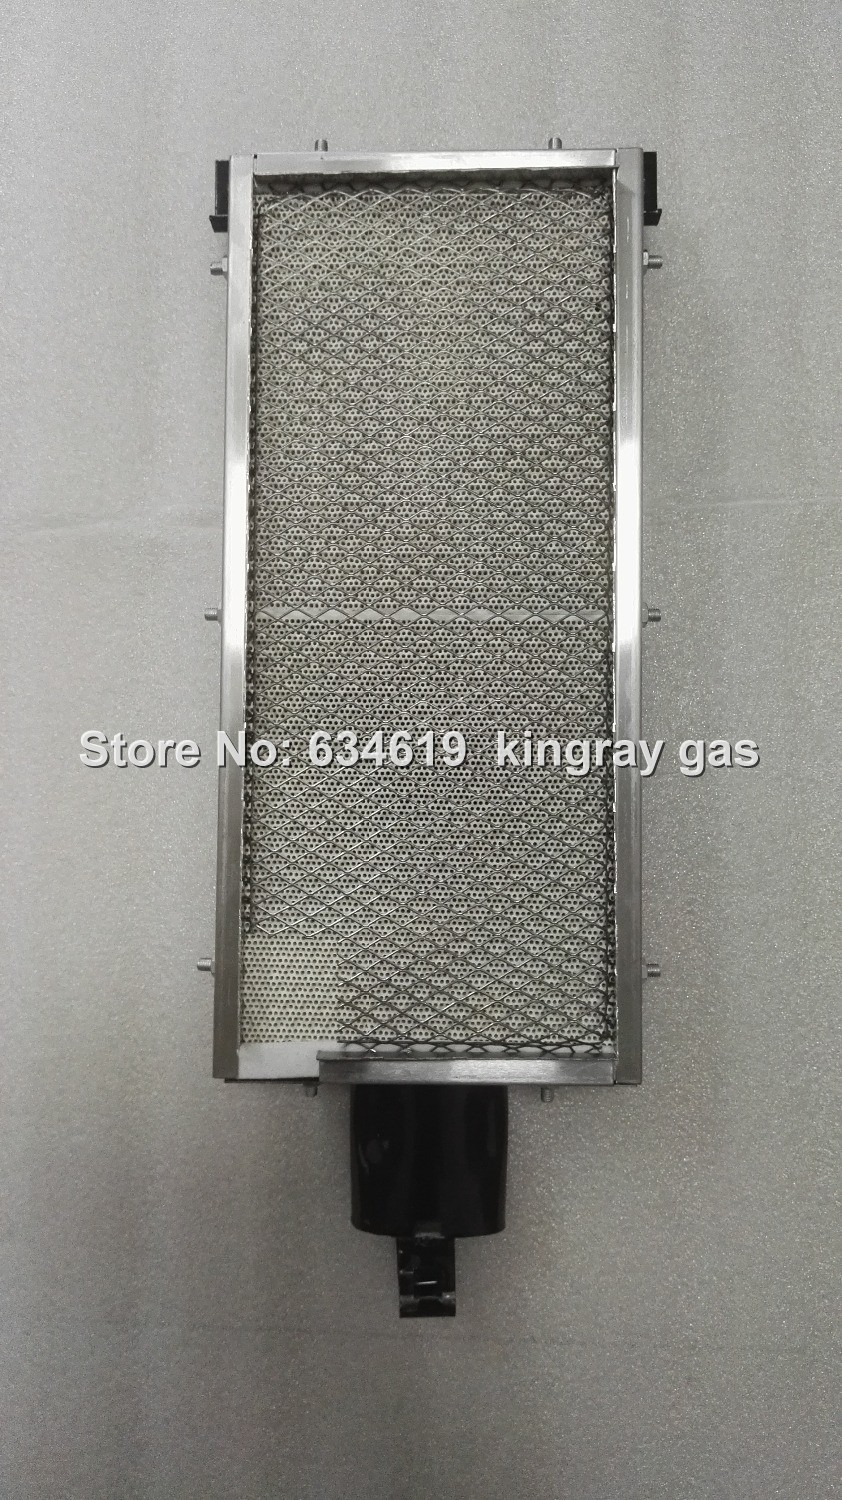 Factory supply gas infrare burner for bbq, quality gas burner for roast machine, stainless steel ceramic infrared burner